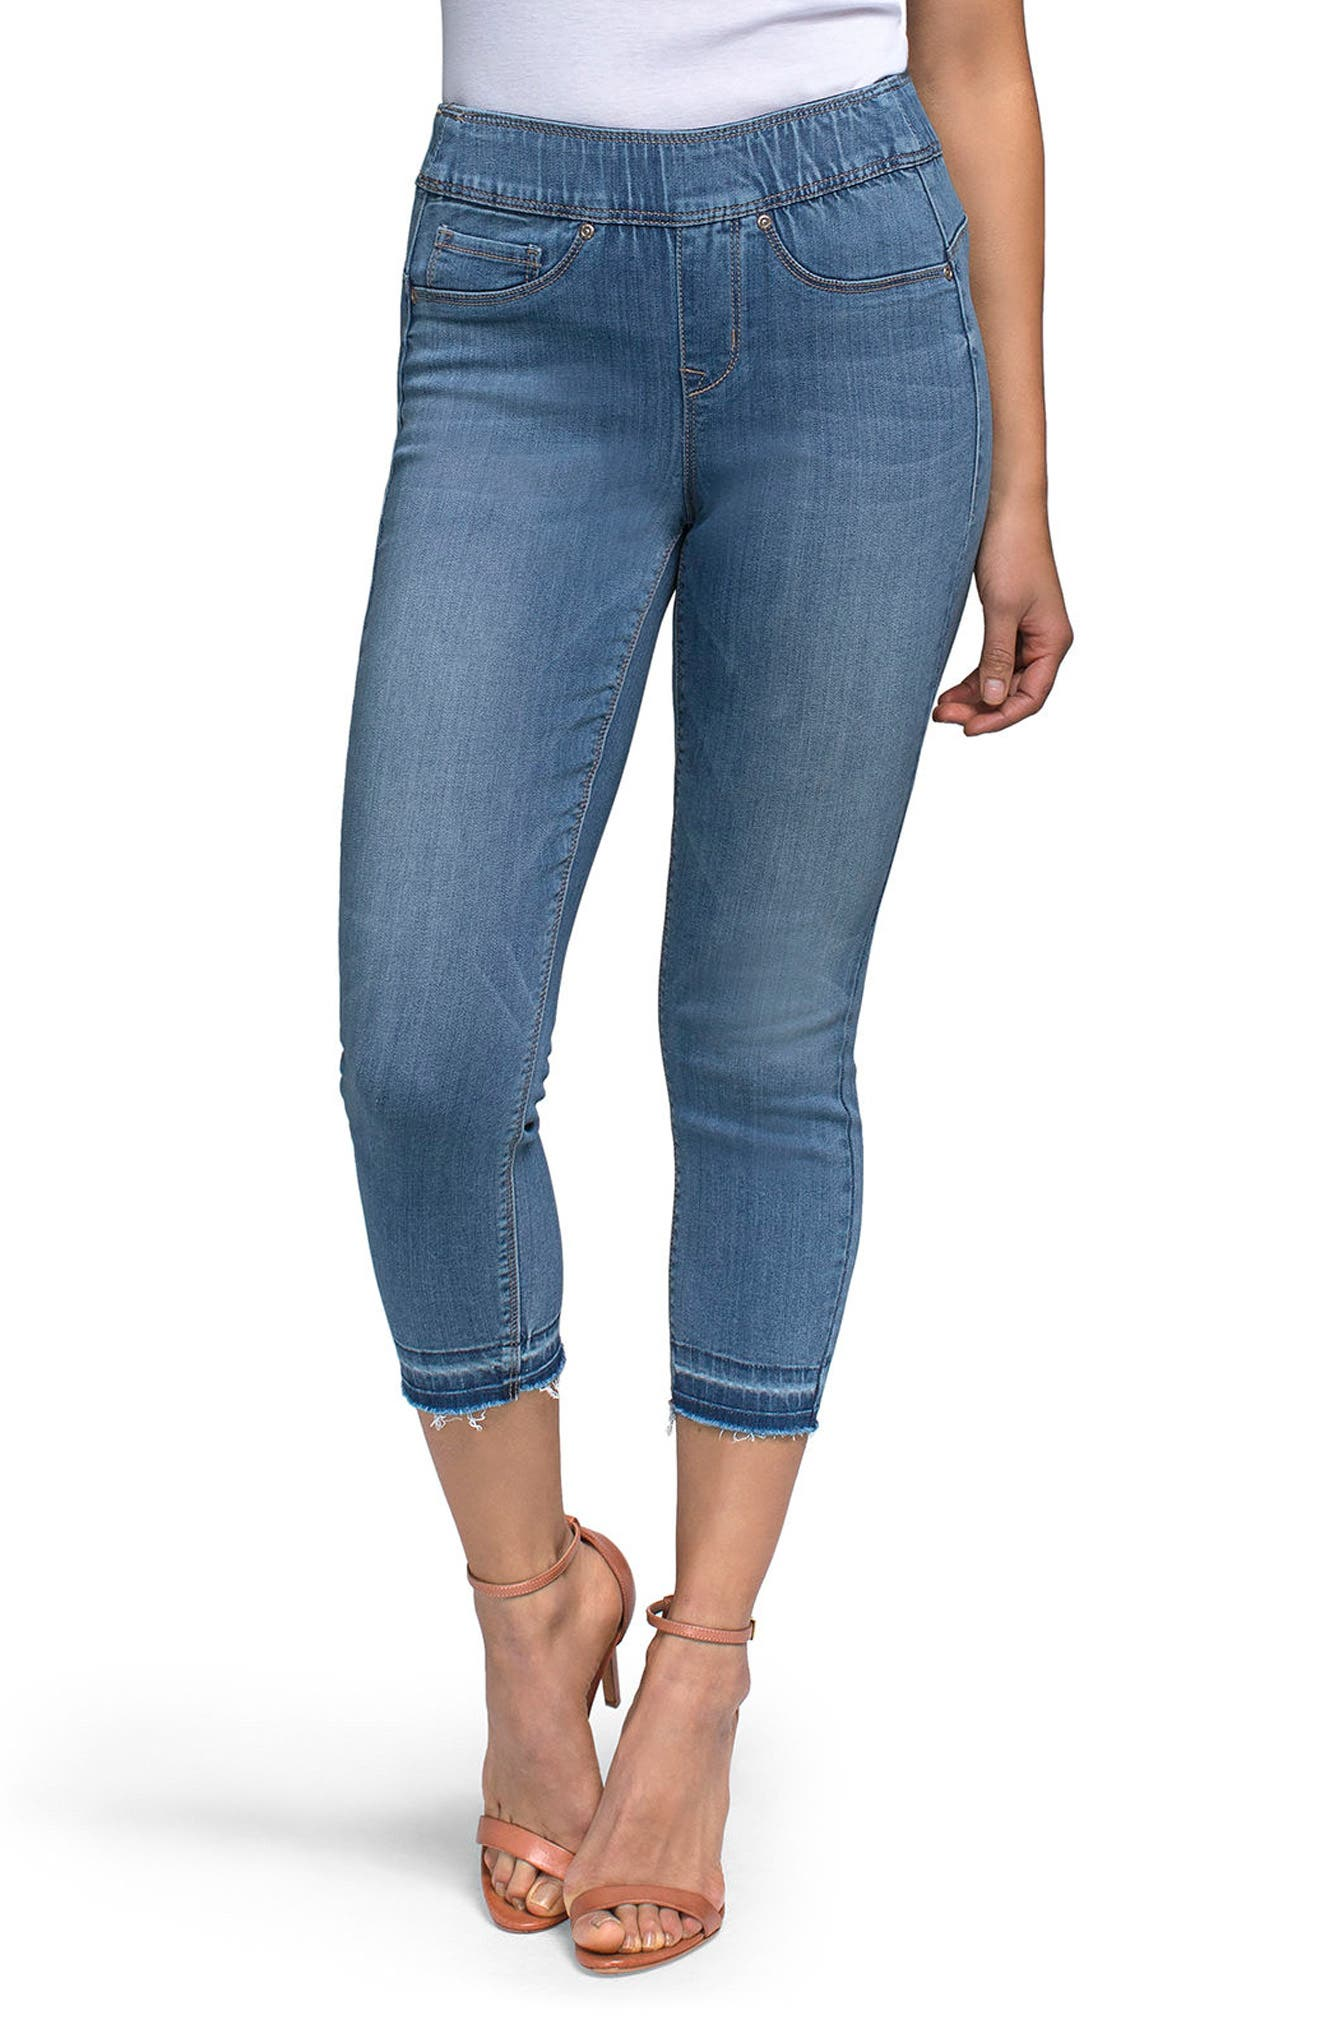 CURVES 360 BY NYDJ NYDJ Release Hem Pull-On Crop Skinny Jeans, Main, color, 406